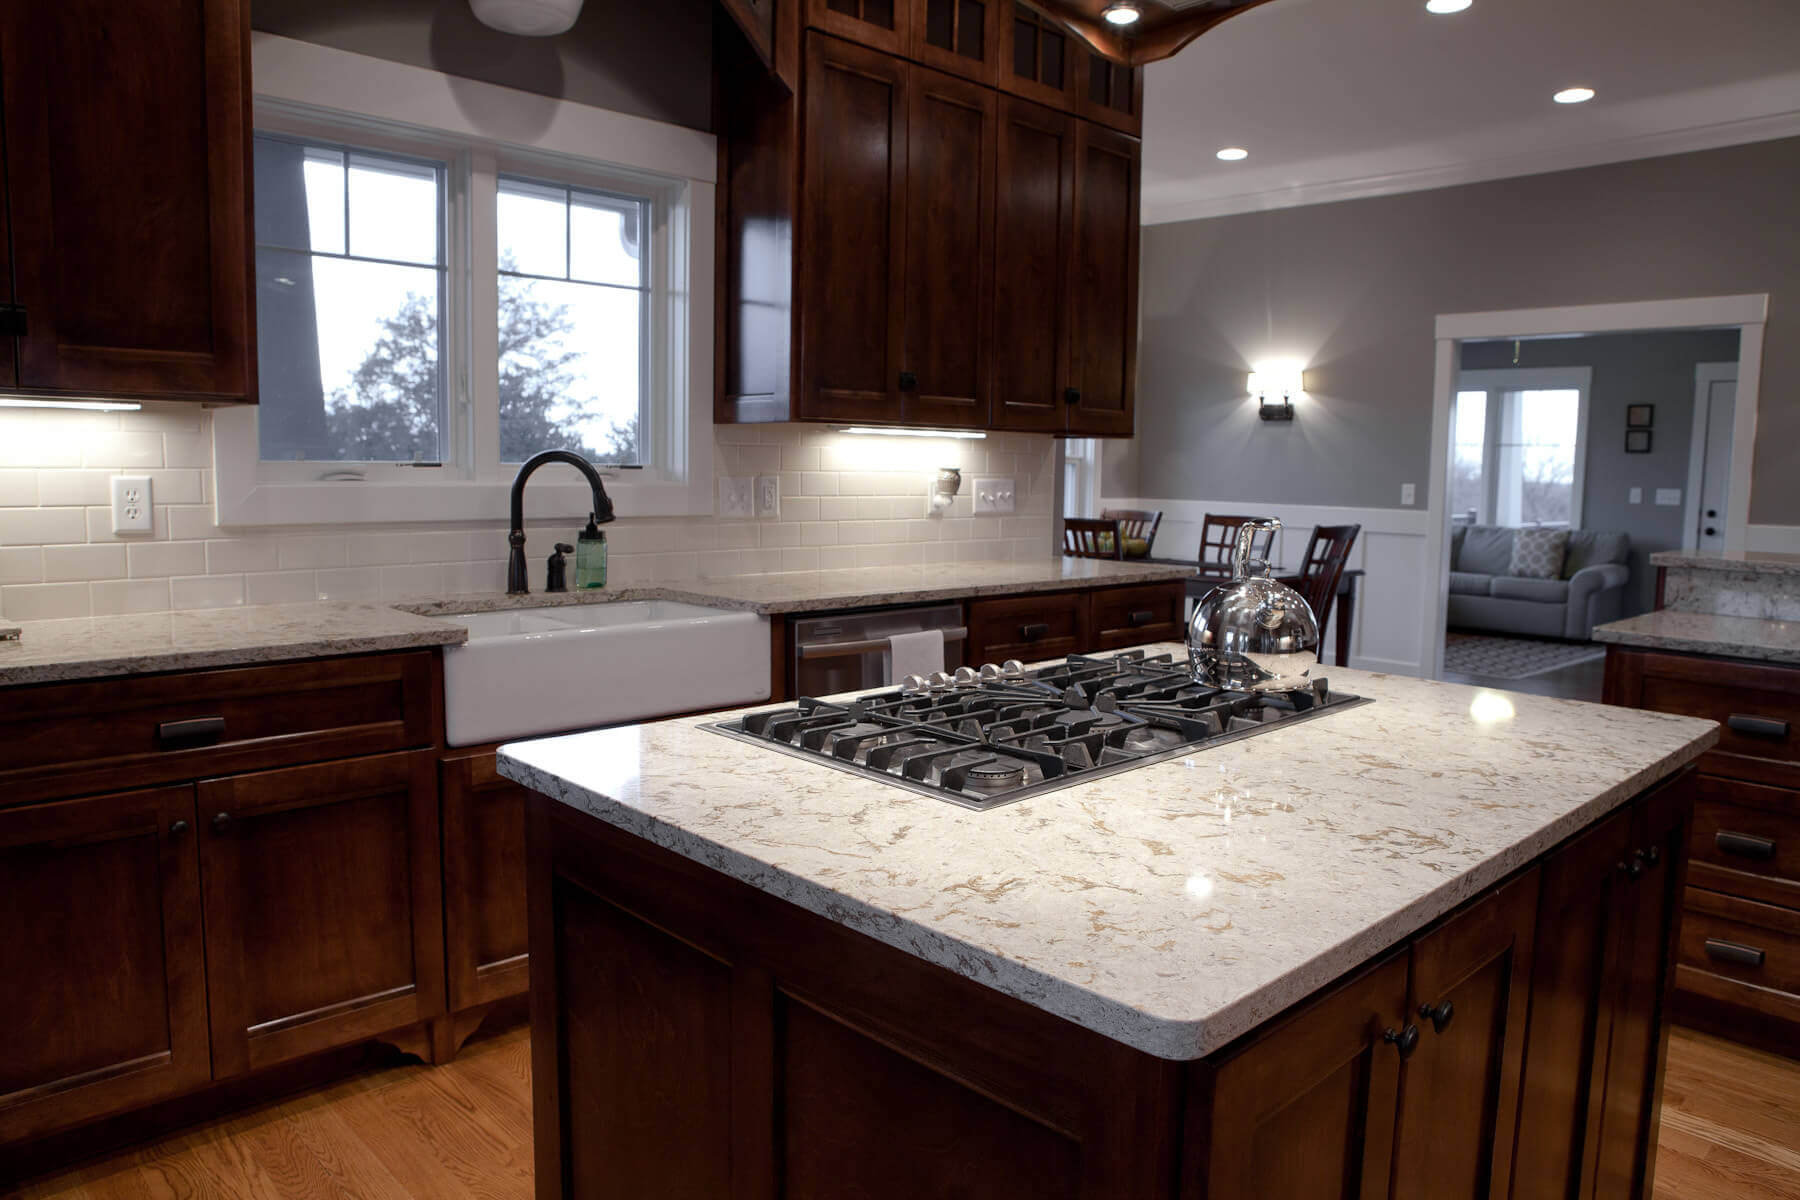 22 Jaw Dropping Small Kitchen Designs: 68+Deluxe Custom Kitchen Island Ideas (Jaw Dropping Designs